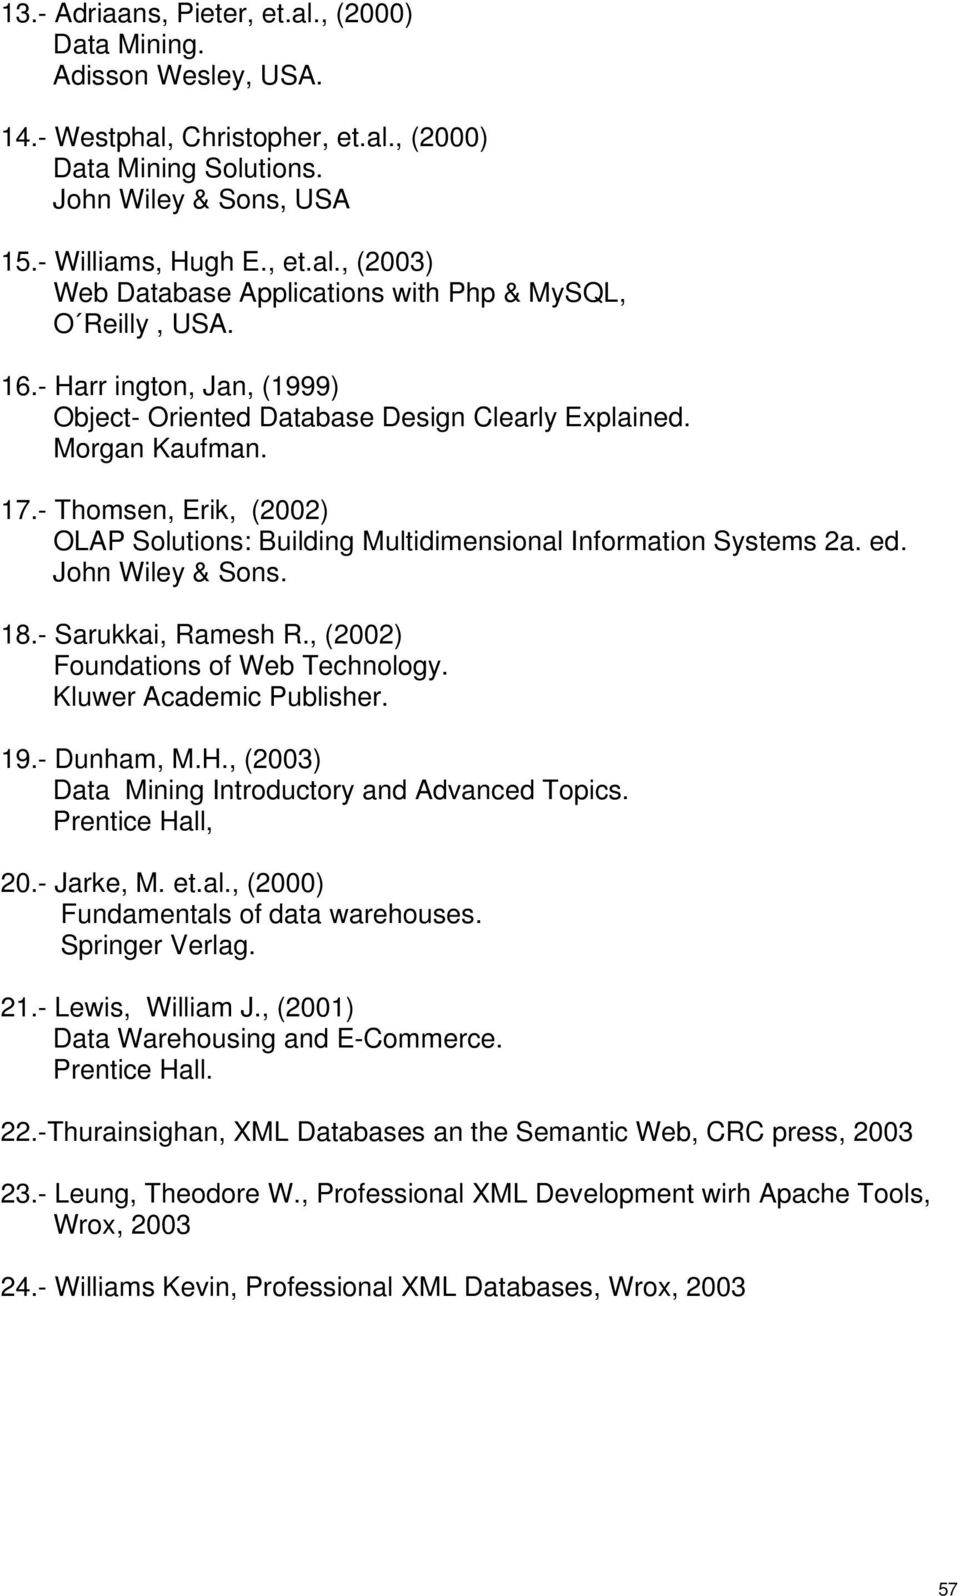 John Wiley & Sons. 18.- Sarukkai, Ramesh R., (2002) Foundations of Web Technology. Kluwer Academic Publisher. 19.- Dunham, M.H., (2003) Data Mining Introductory and Advanced Topics. Prentice Hall, 20.